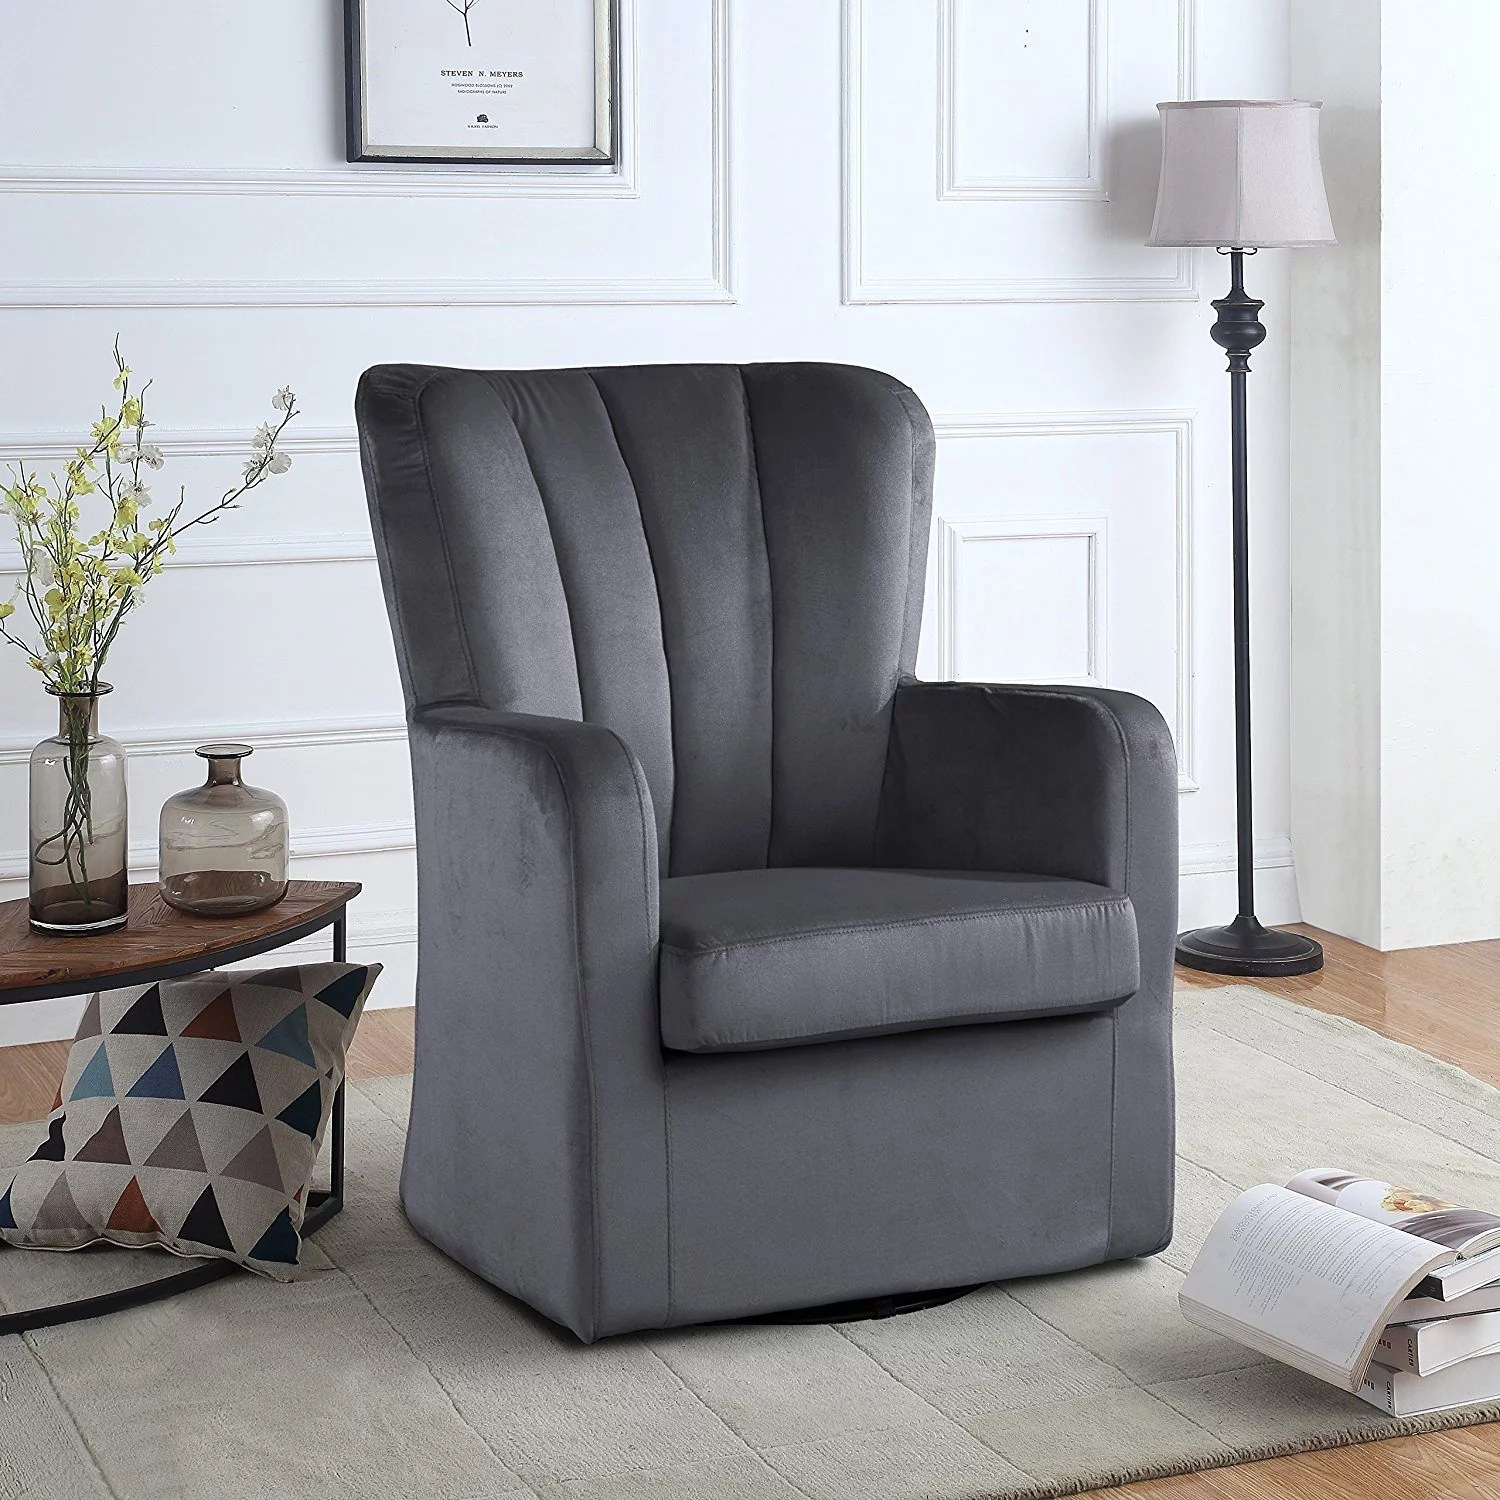 Accent Chairs For Living Room Modern Velvet Swivel Armchair Rotating Accent Chair For